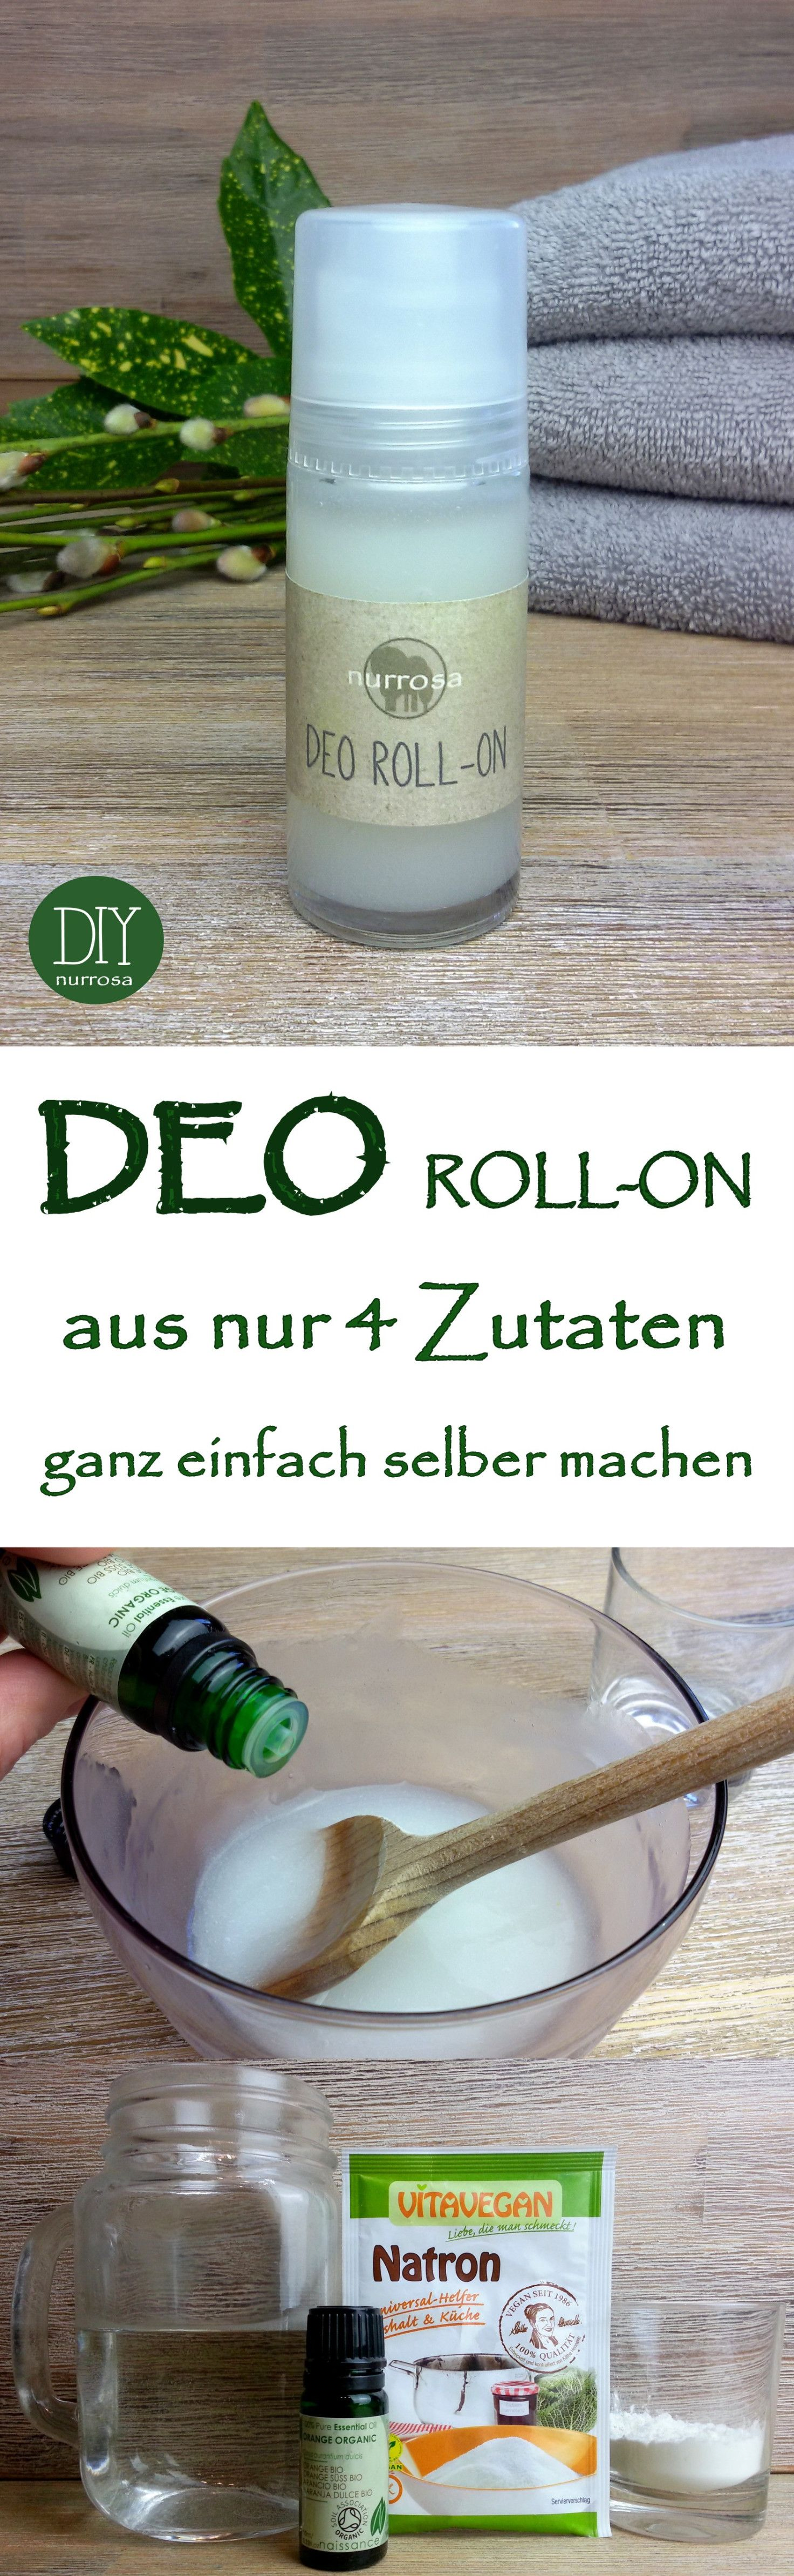 Photo of deo-roll-on-yourself-machen9